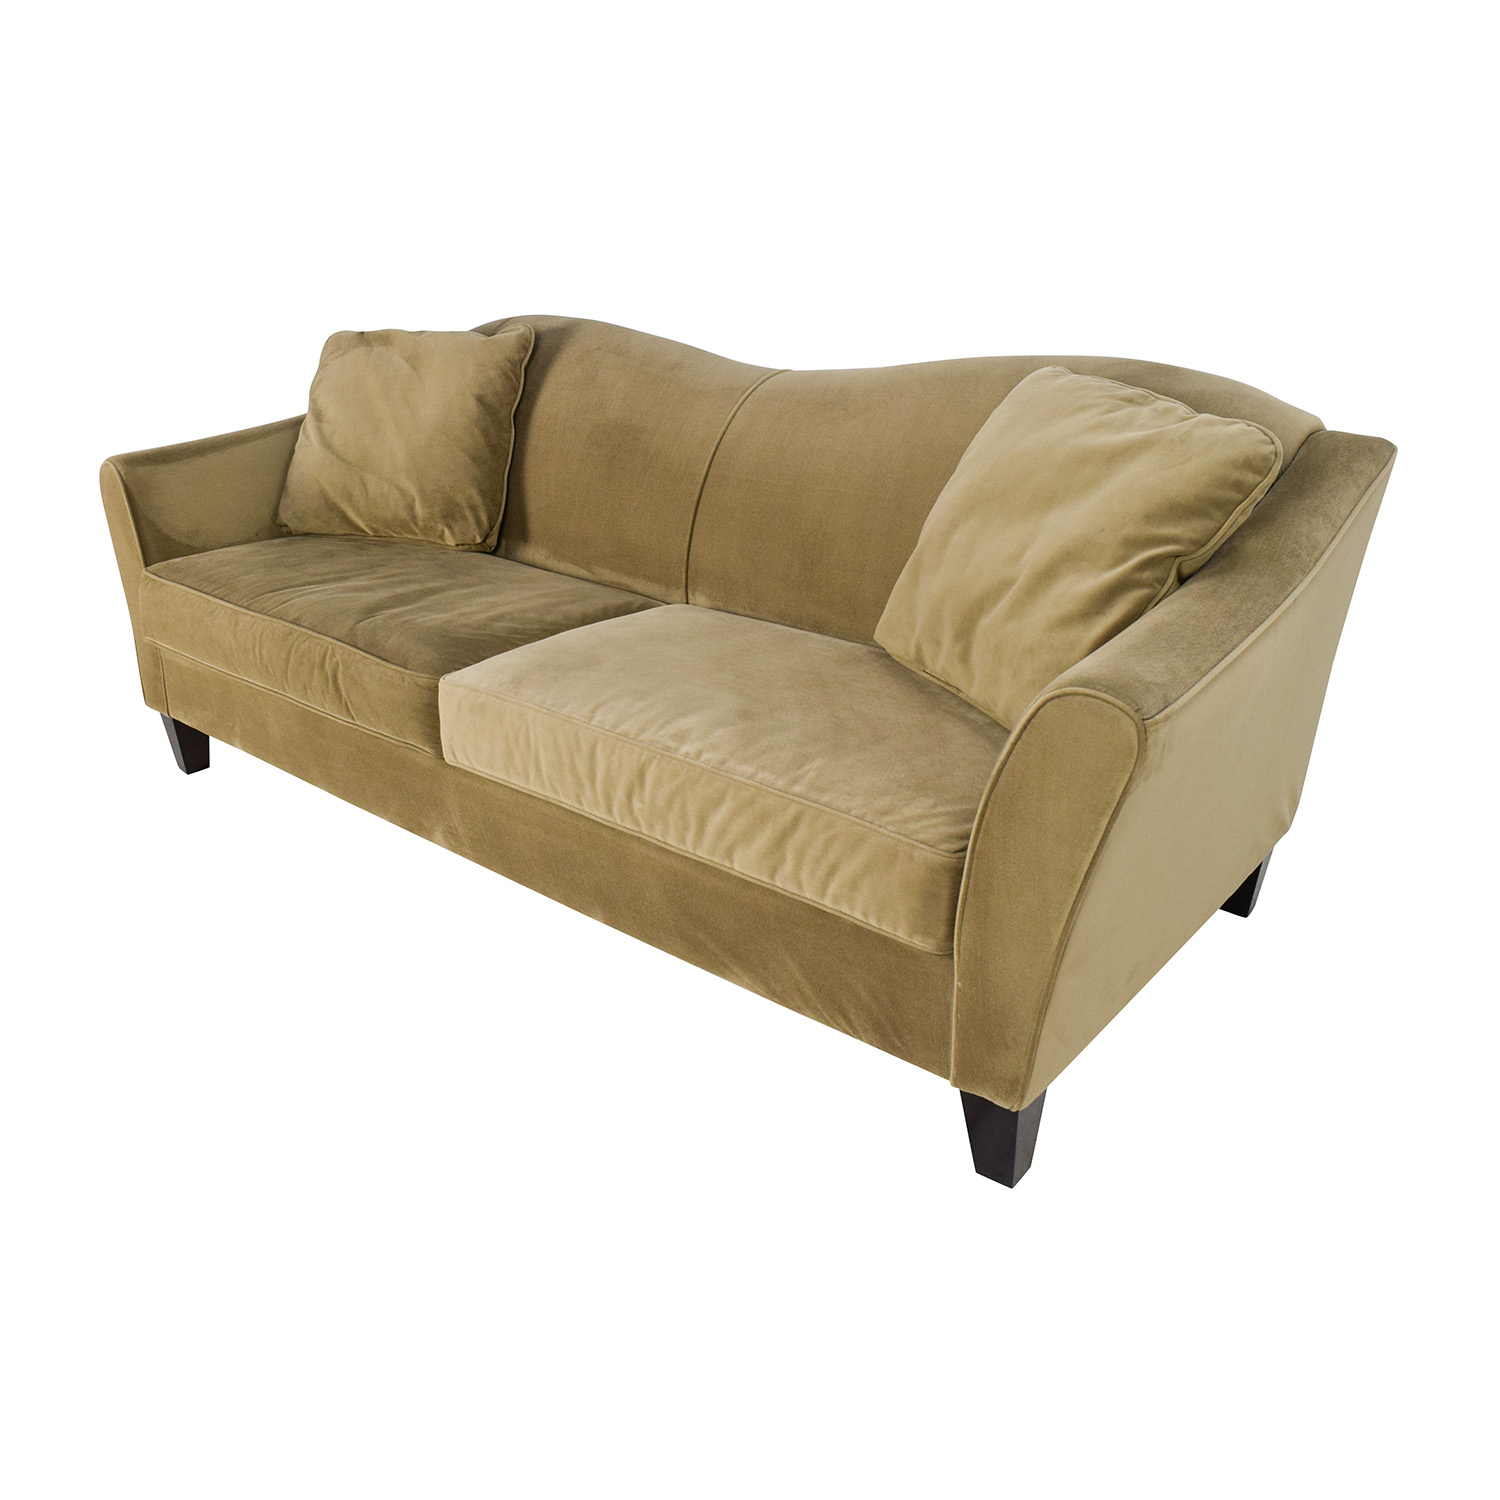 raymour and flanigan sofas 75 raymour and flanigan raymour amp flanigan 2 seater 30368